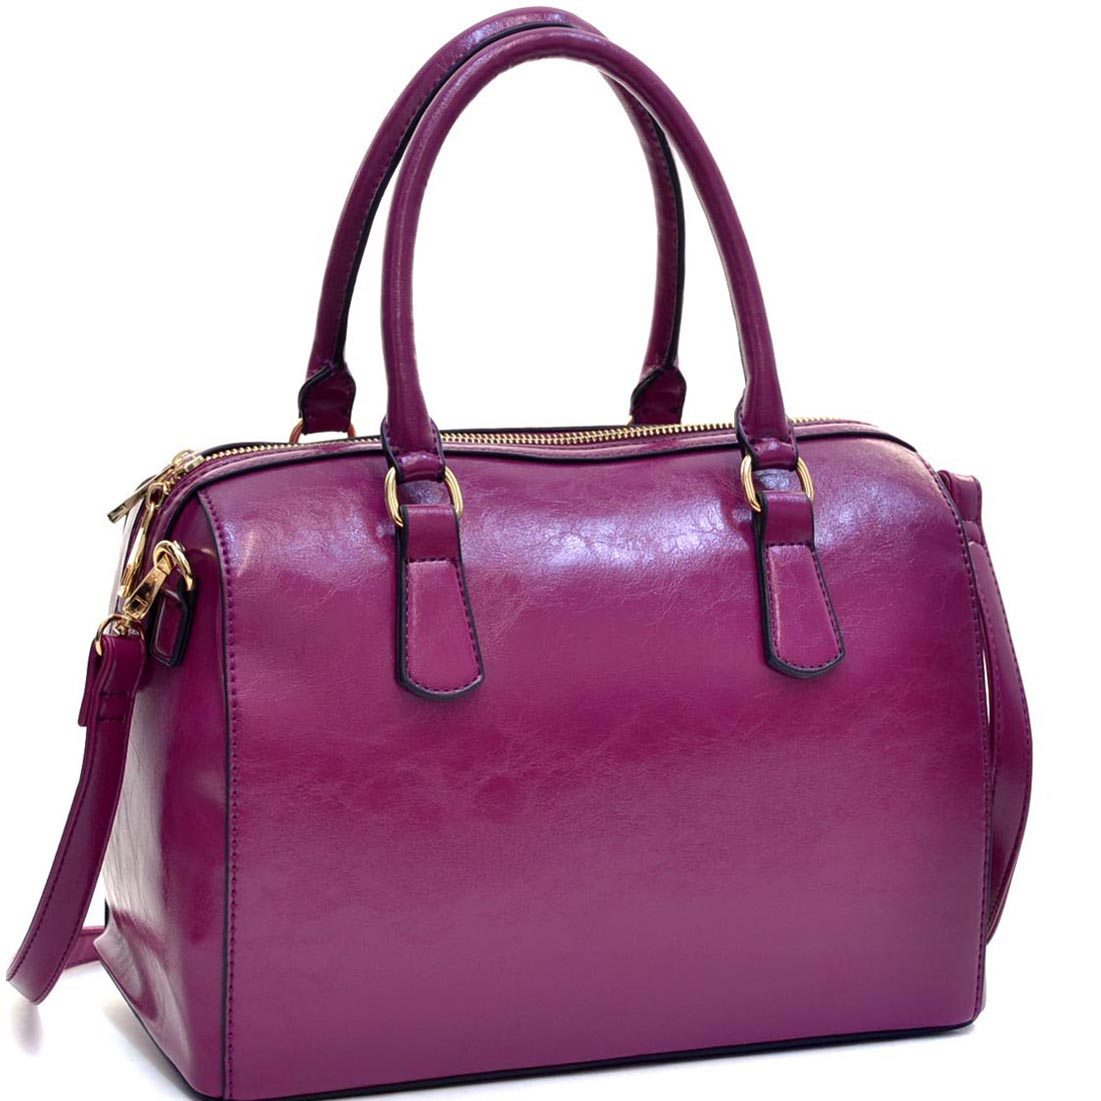 Dasein® Deep Gloss Barrel Body Satchel w/Removable Shoulder Strap